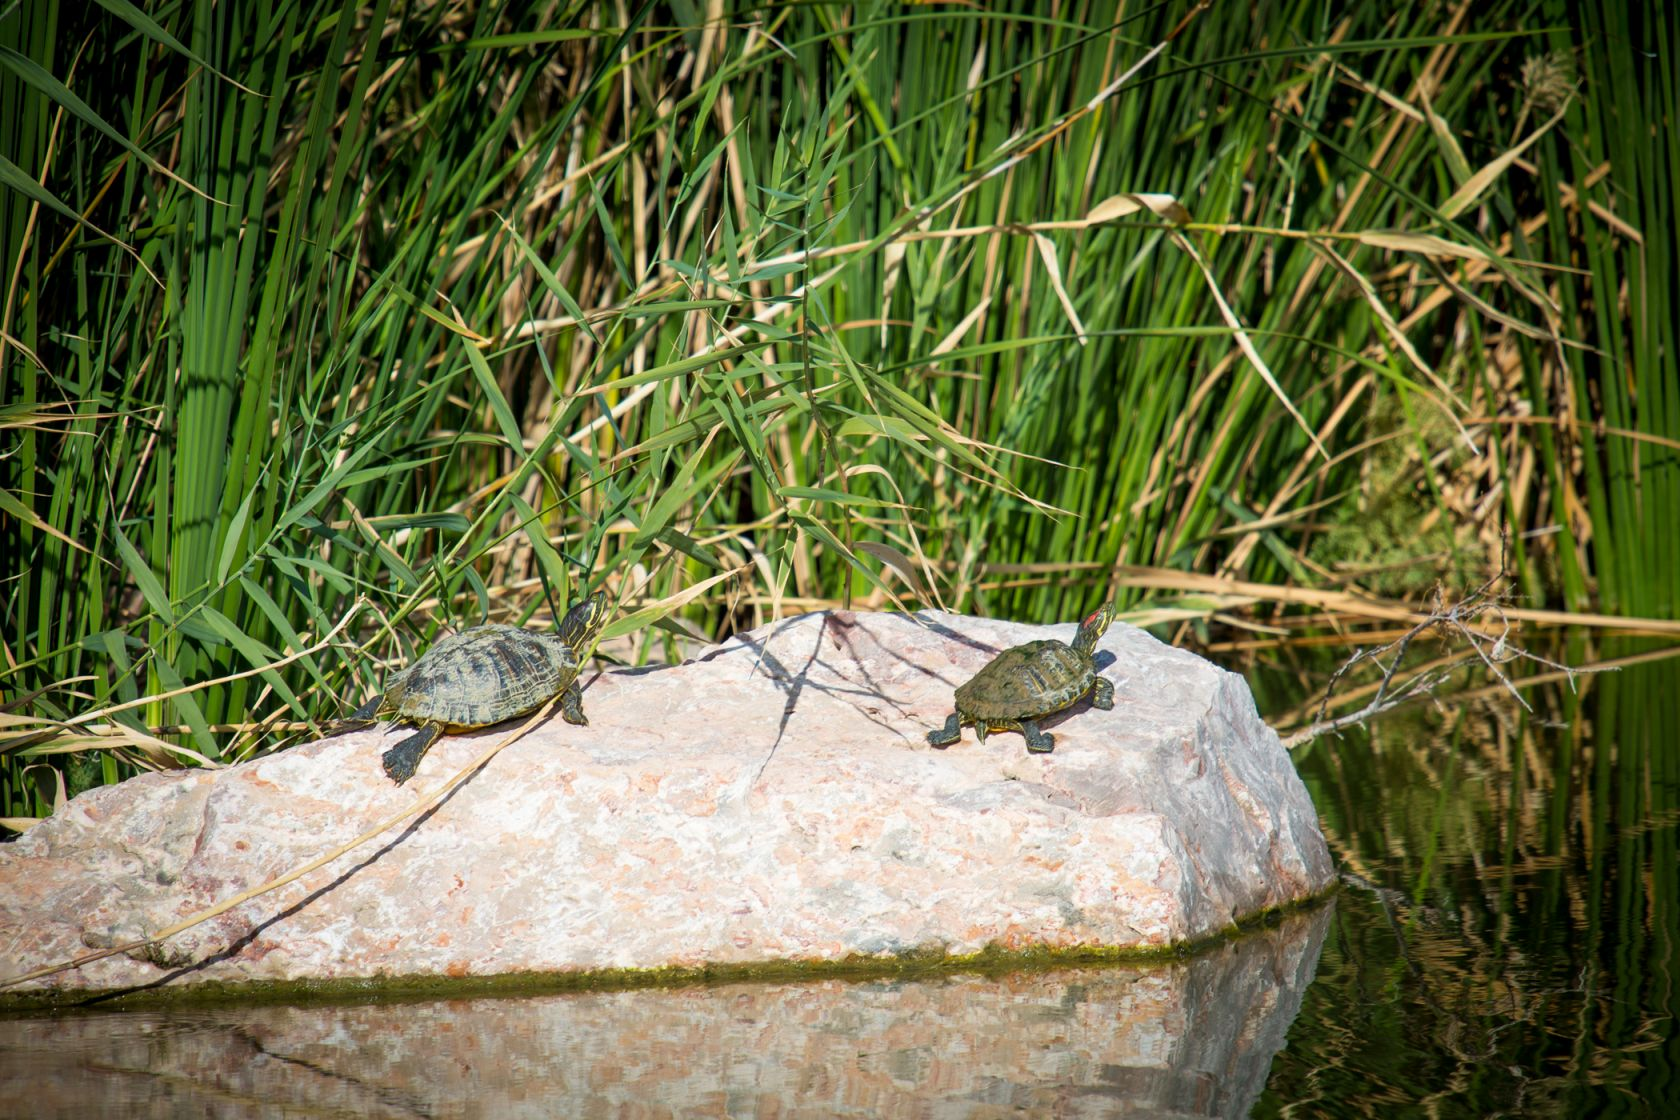 Turtles walk on a rock in the water of the Wetlands Park.